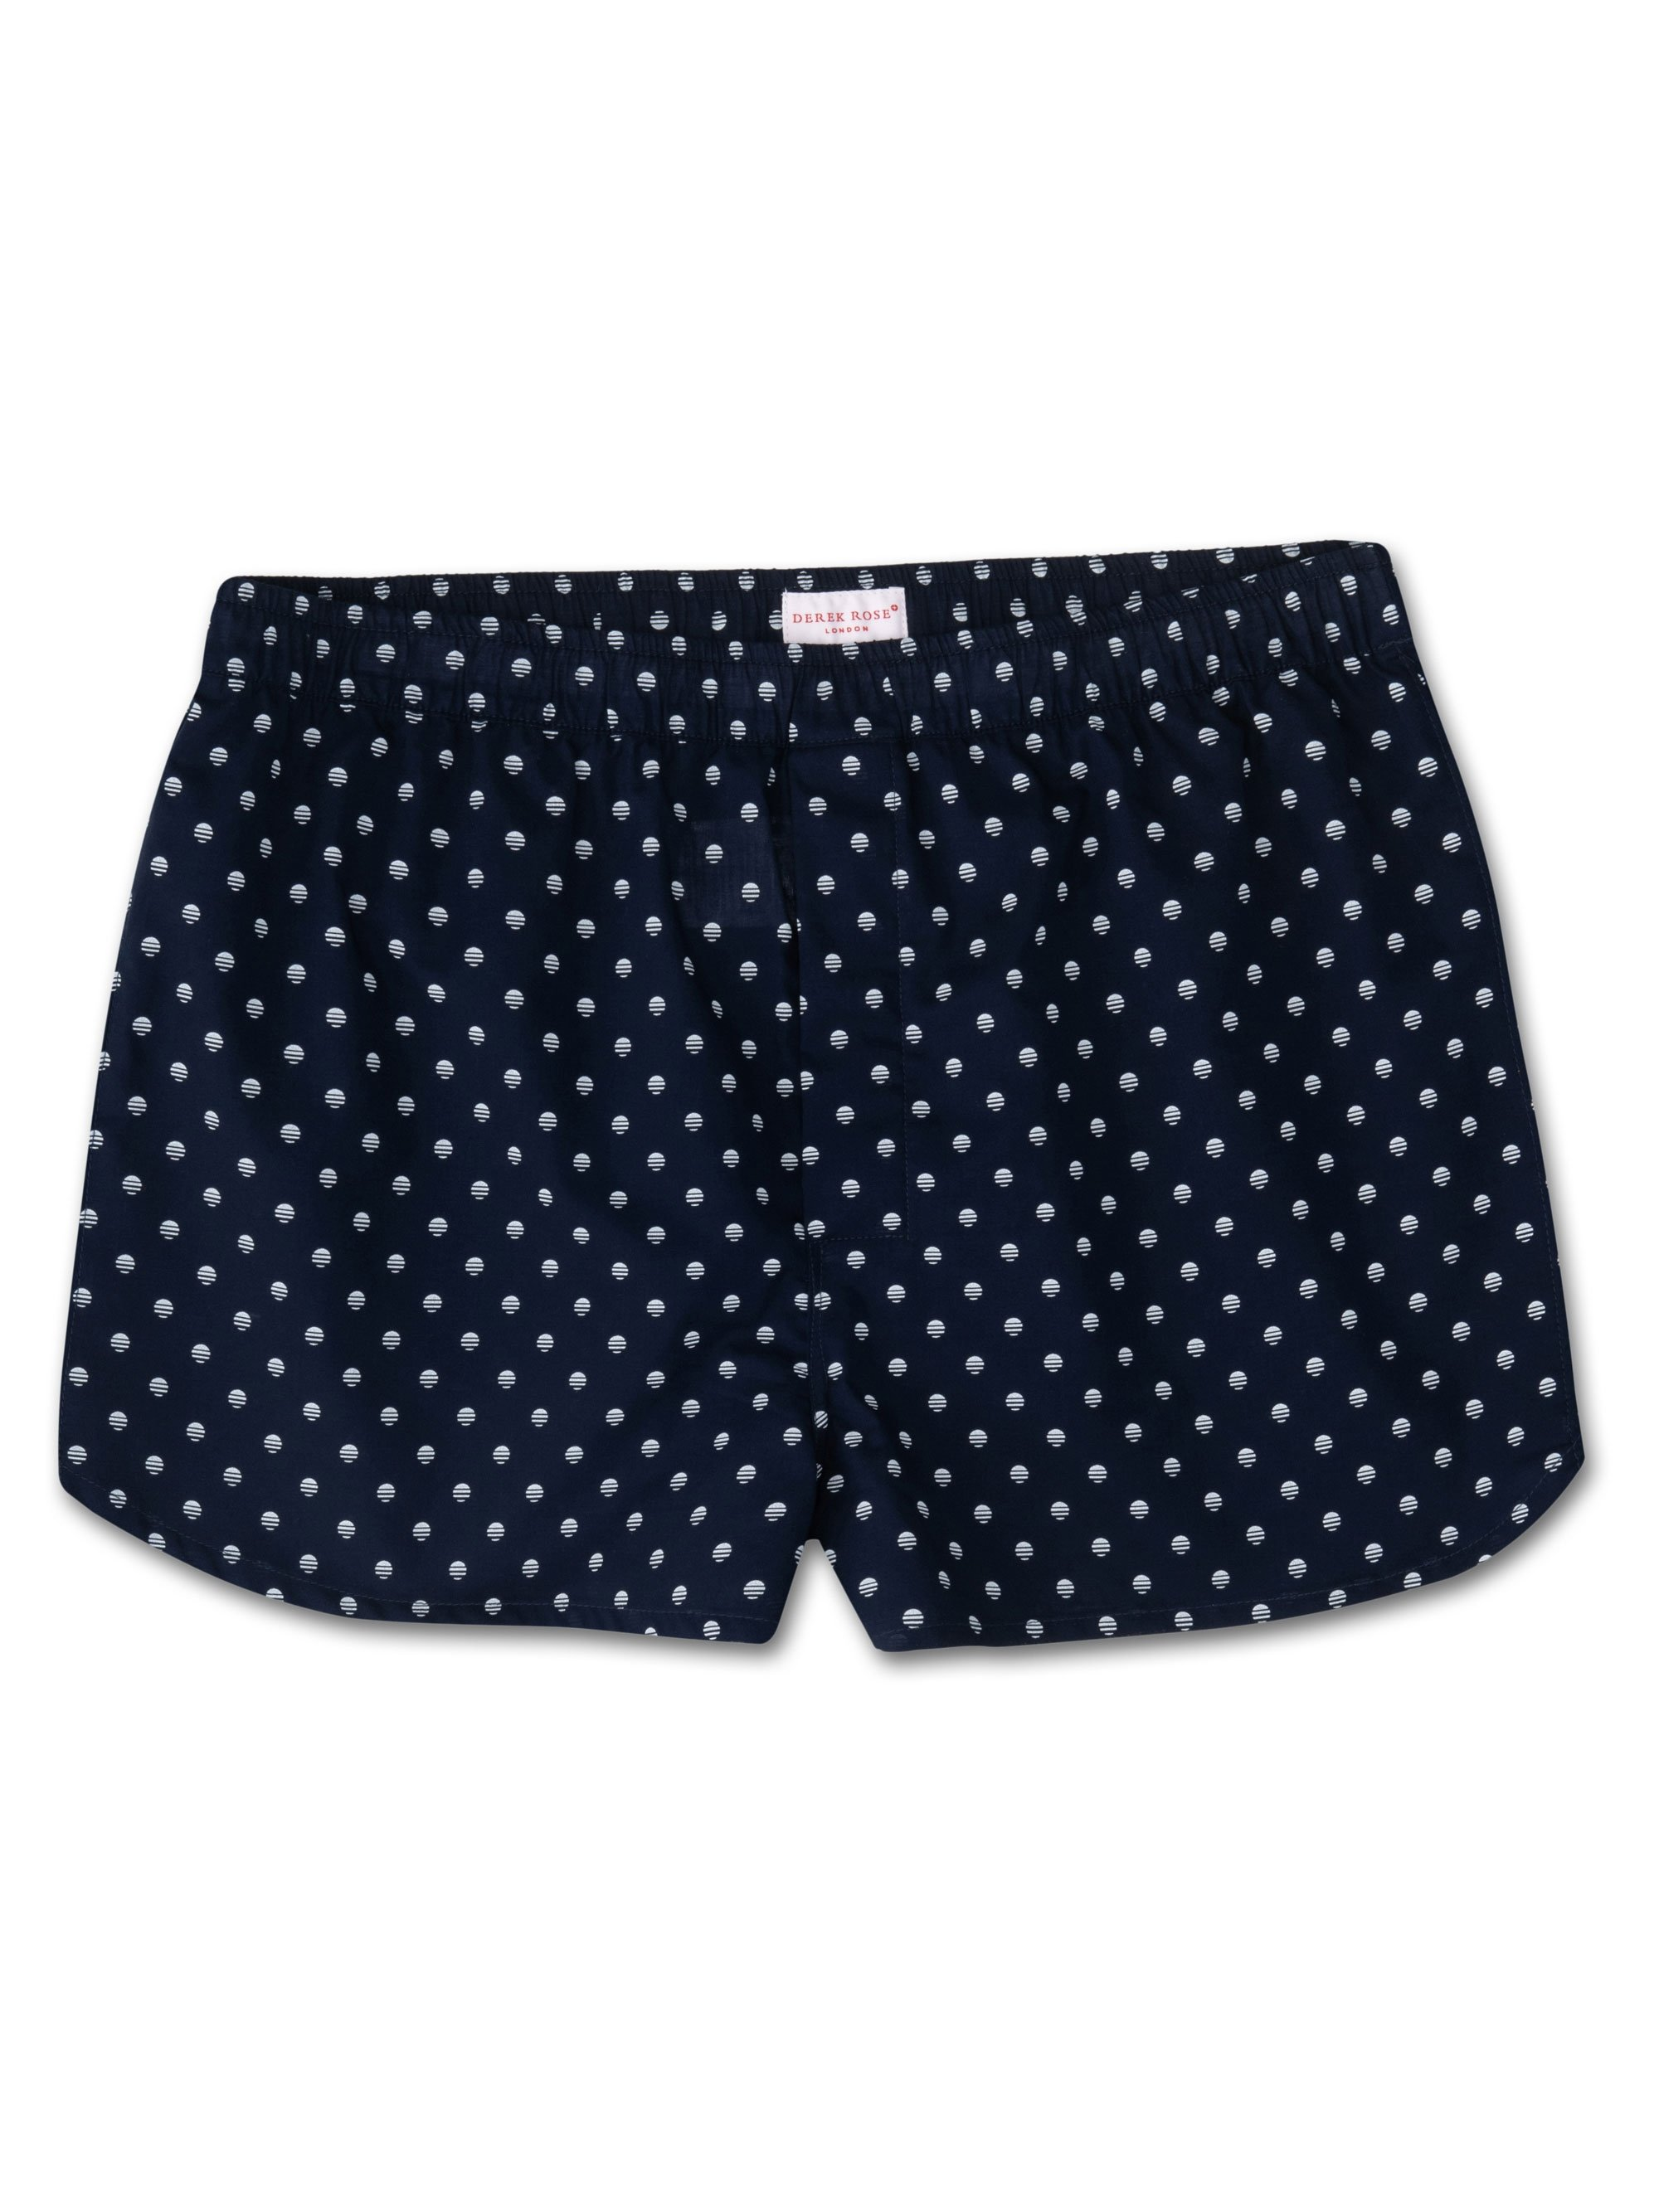 Men's Modern Fit Boxer Shorts Nelson 68 Cotton Batiste Navy